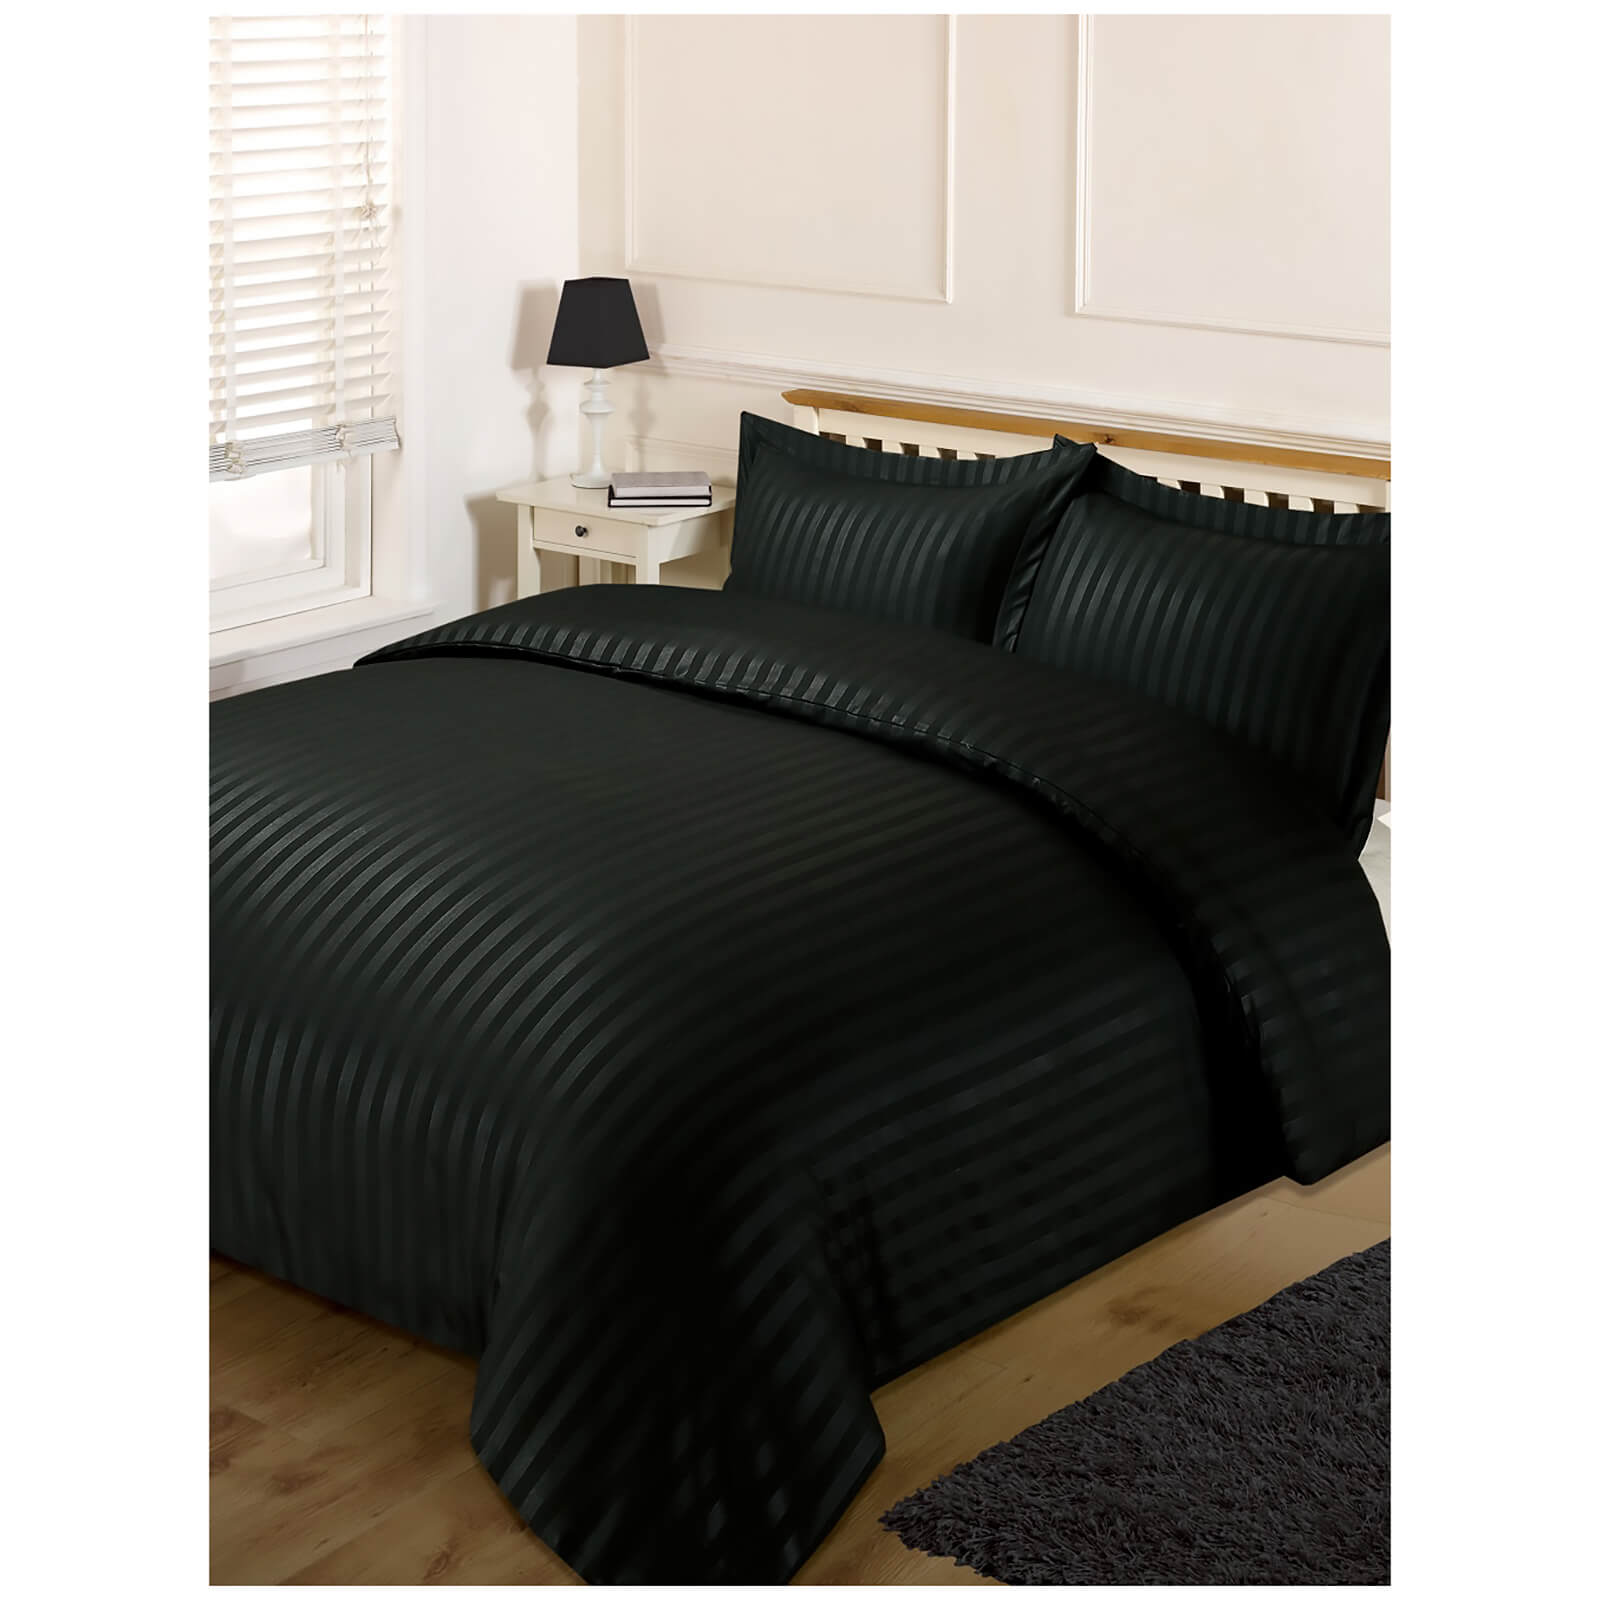 Brentfords Satin Stripe Duvet Set - Black